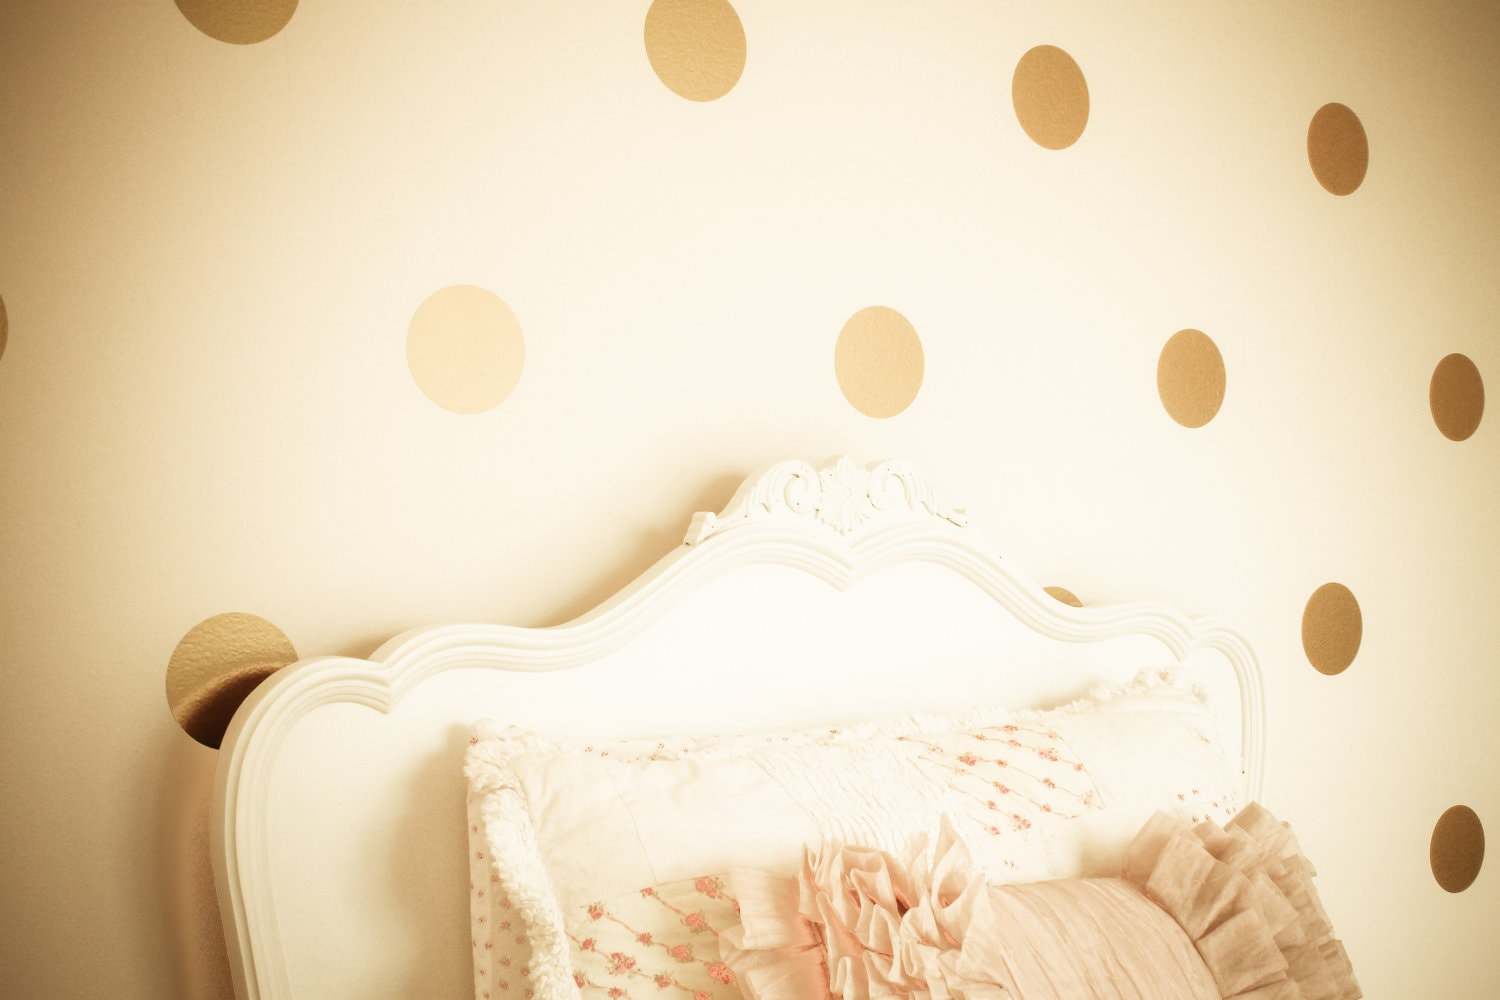 Vinyl Wall Sticker Decal Art Polka Dots